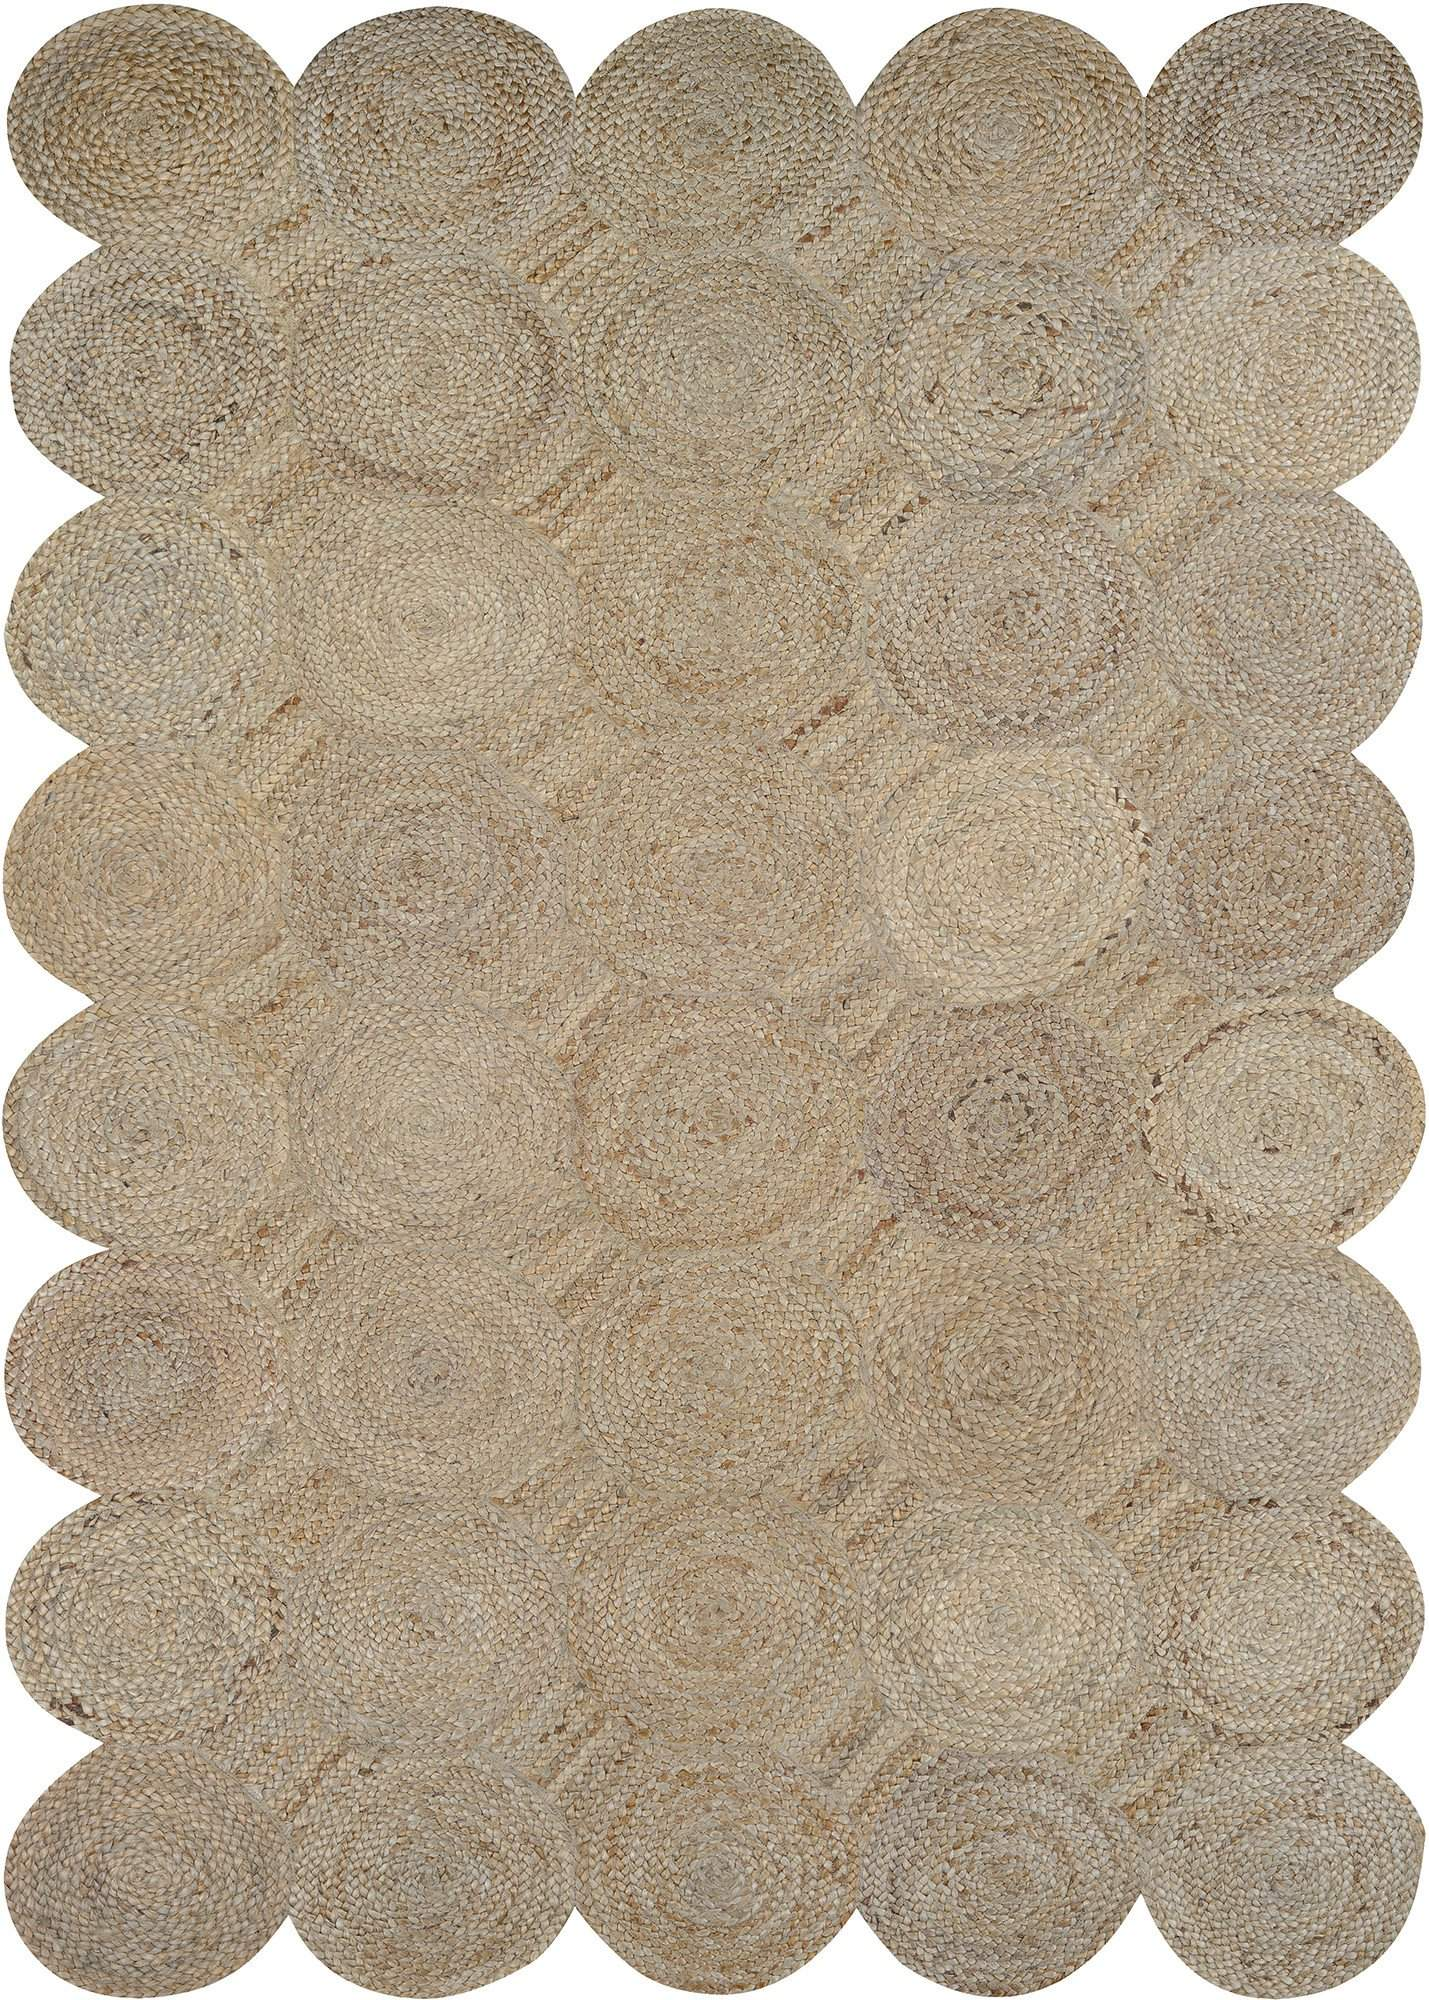 nature's elements henge eco friendly area rugs  rug shop and more - nature's elements henge eco friendly area rugs